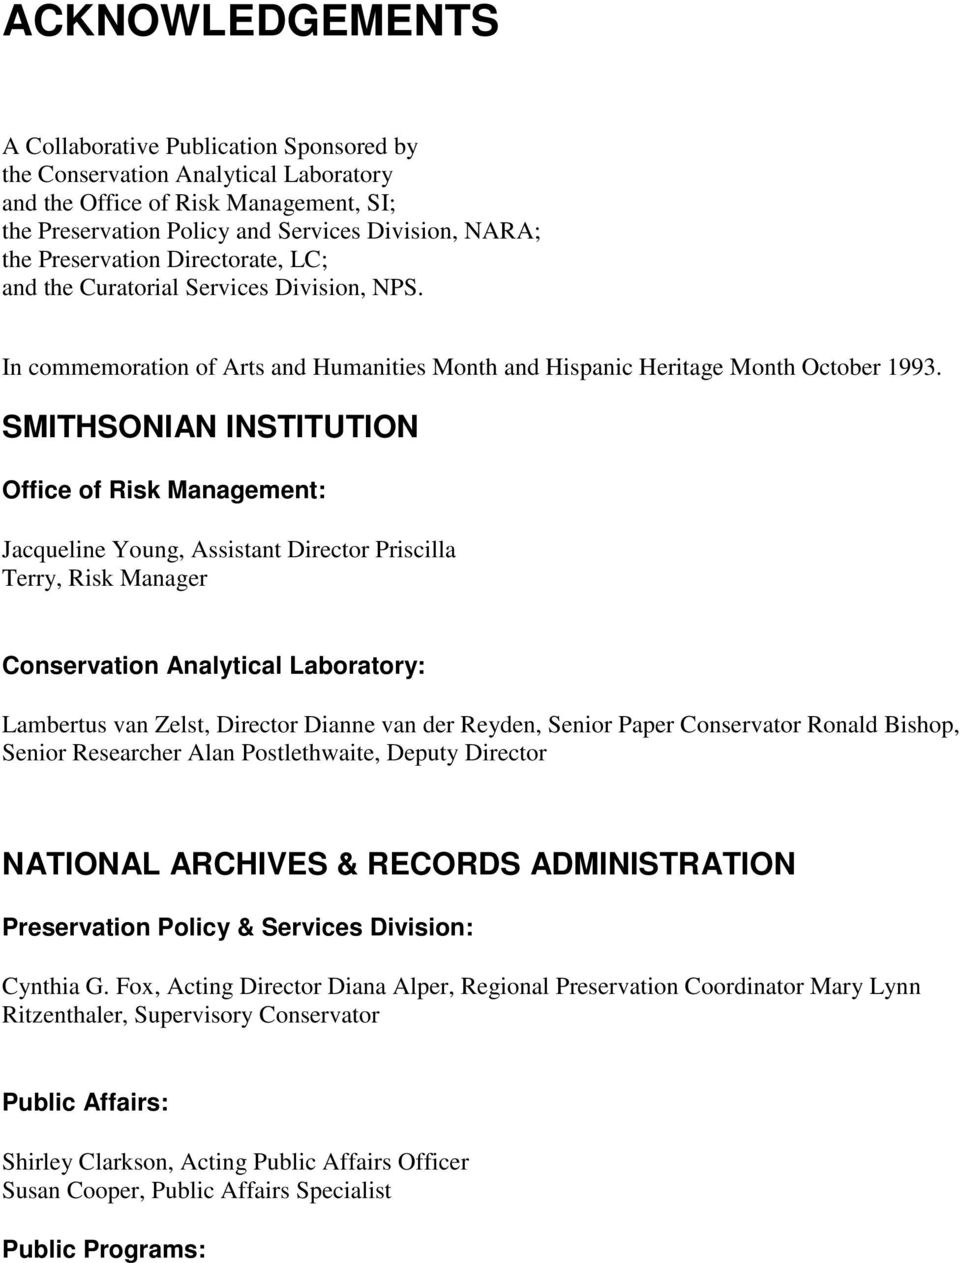 SMITHSONIAN INSTITUTION Office of Risk Management: Jacqueline Young, Assistant Director Priscilla Terry, Risk Manager Conservation Analytical Laboratory: Lambertus van Zelst, Director Dianne van der